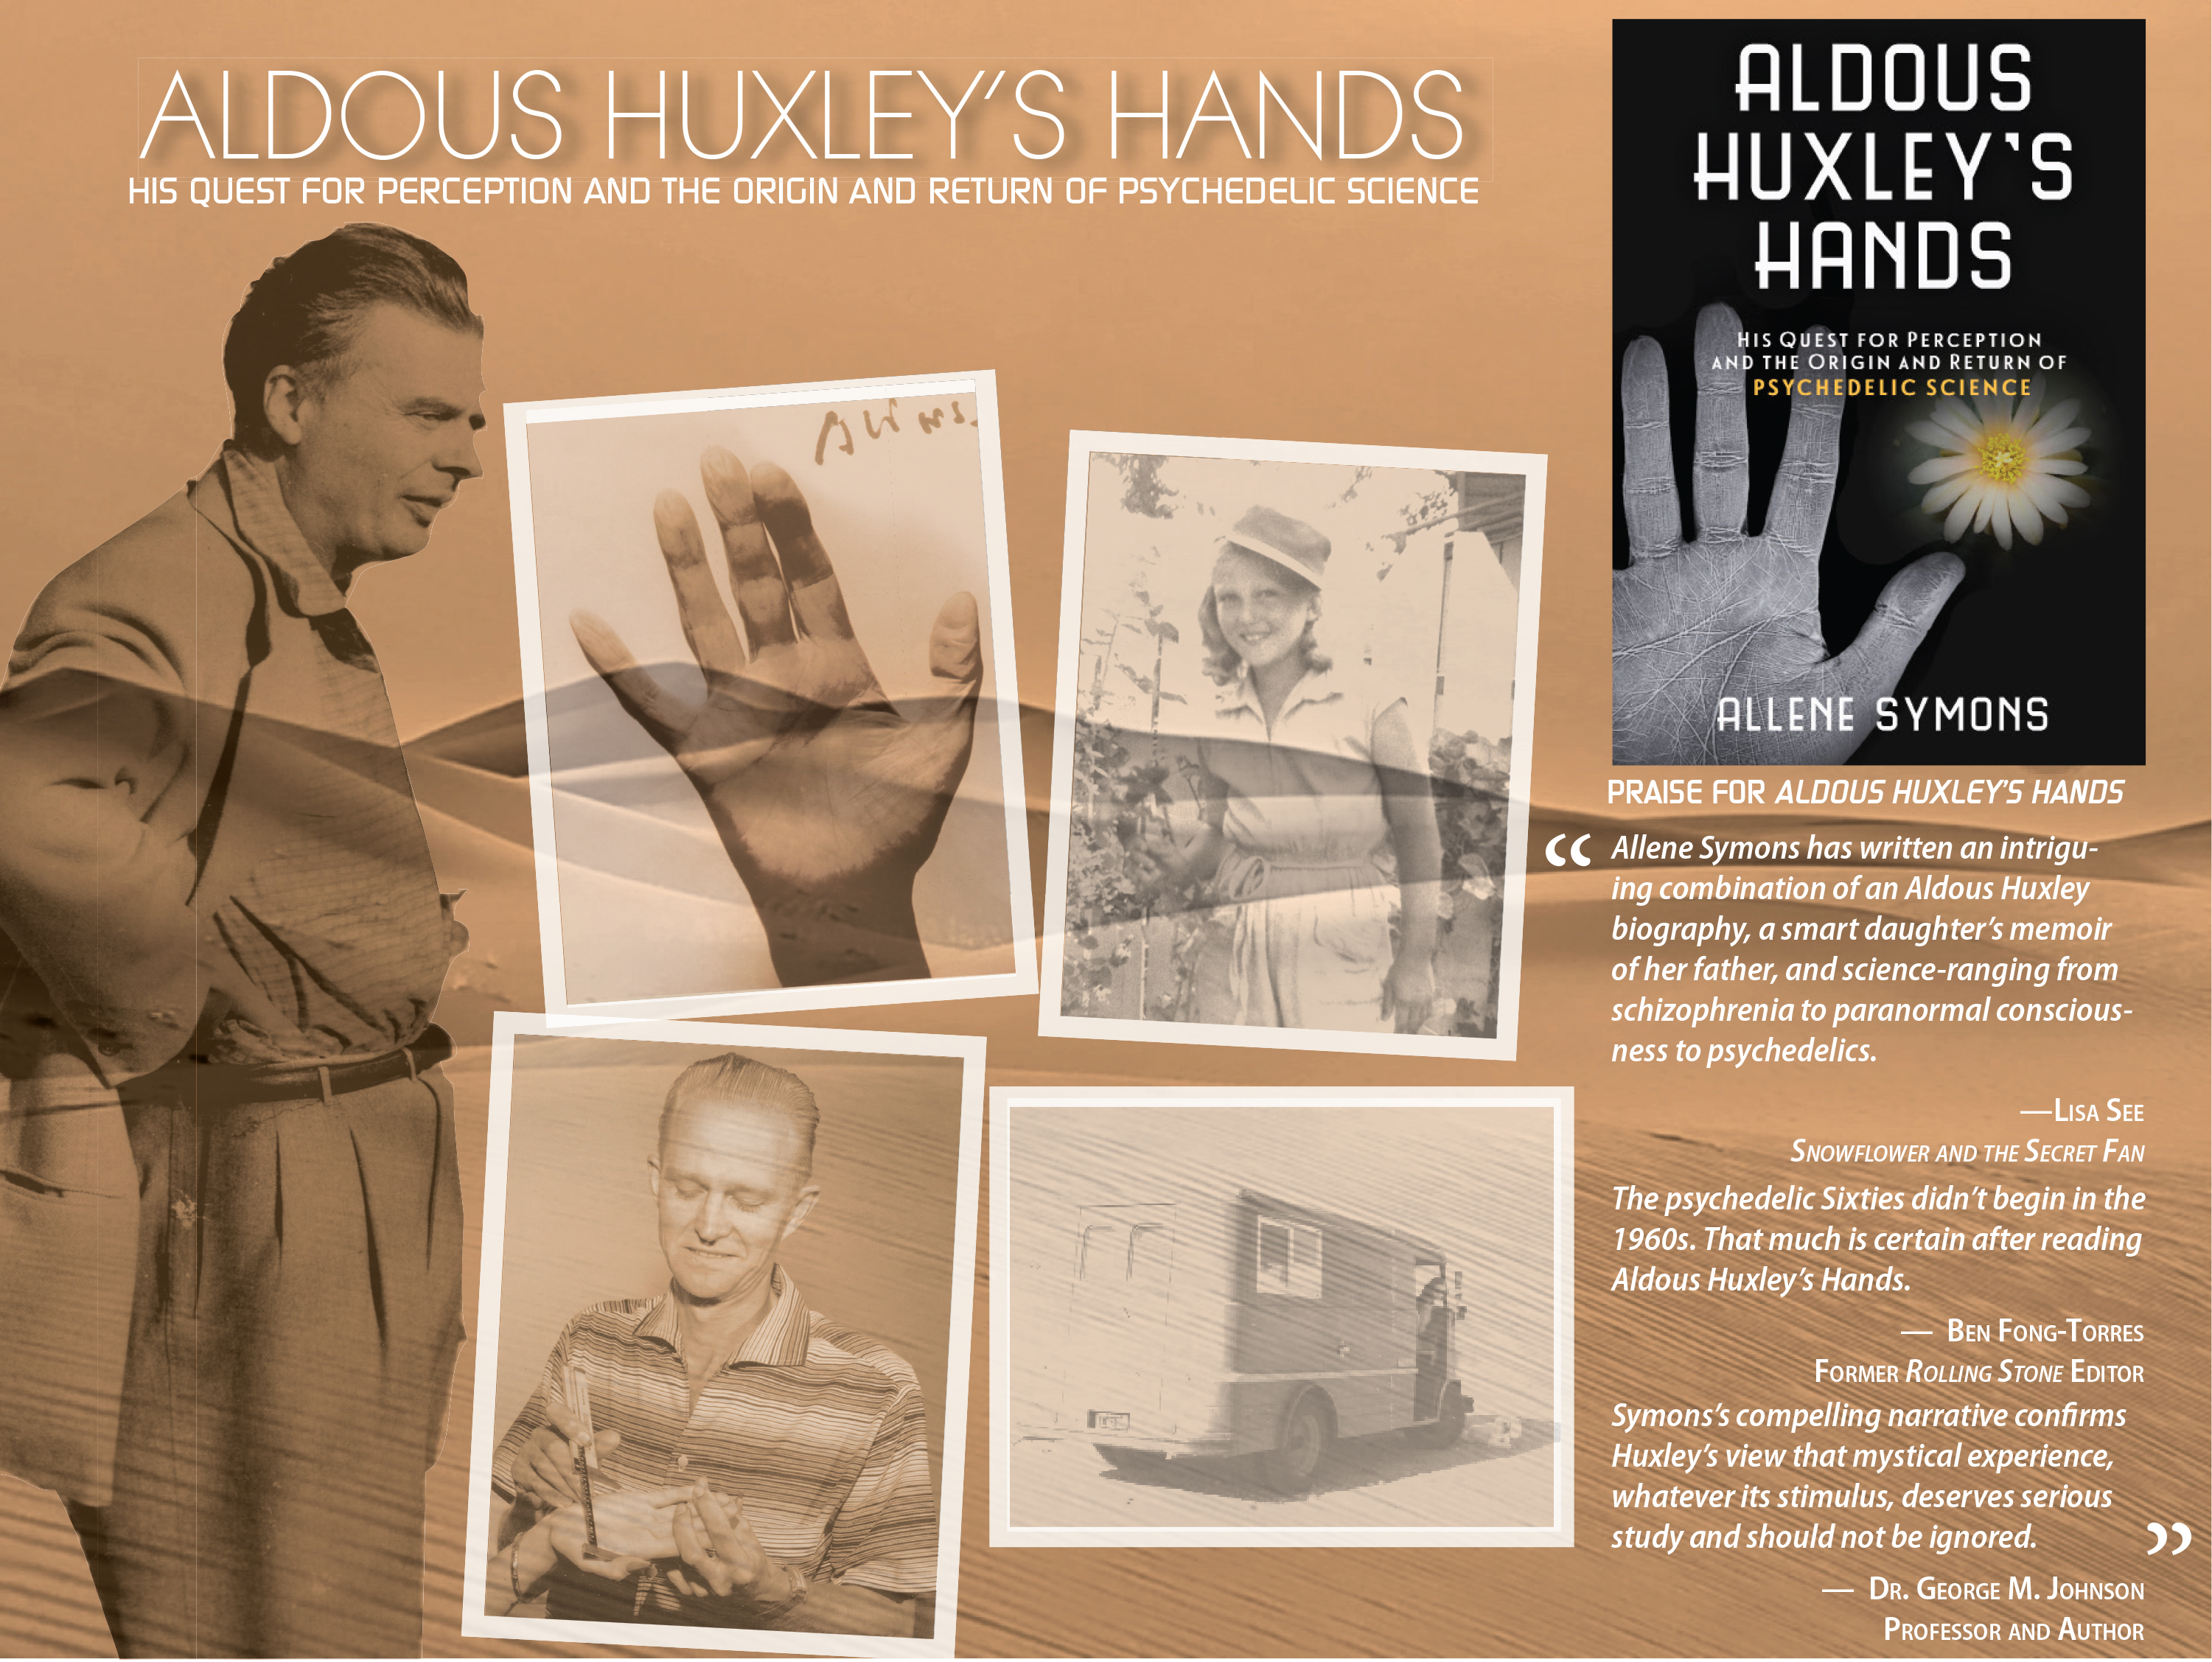 biography of aldous huxley Aldous leonard huxley was born on july 26th 1894 in godalming, england to english parents, leonard huxley and julia arnold from an early age he was surrounded by writers and scientists in his family and this most likely contributed to his writing.